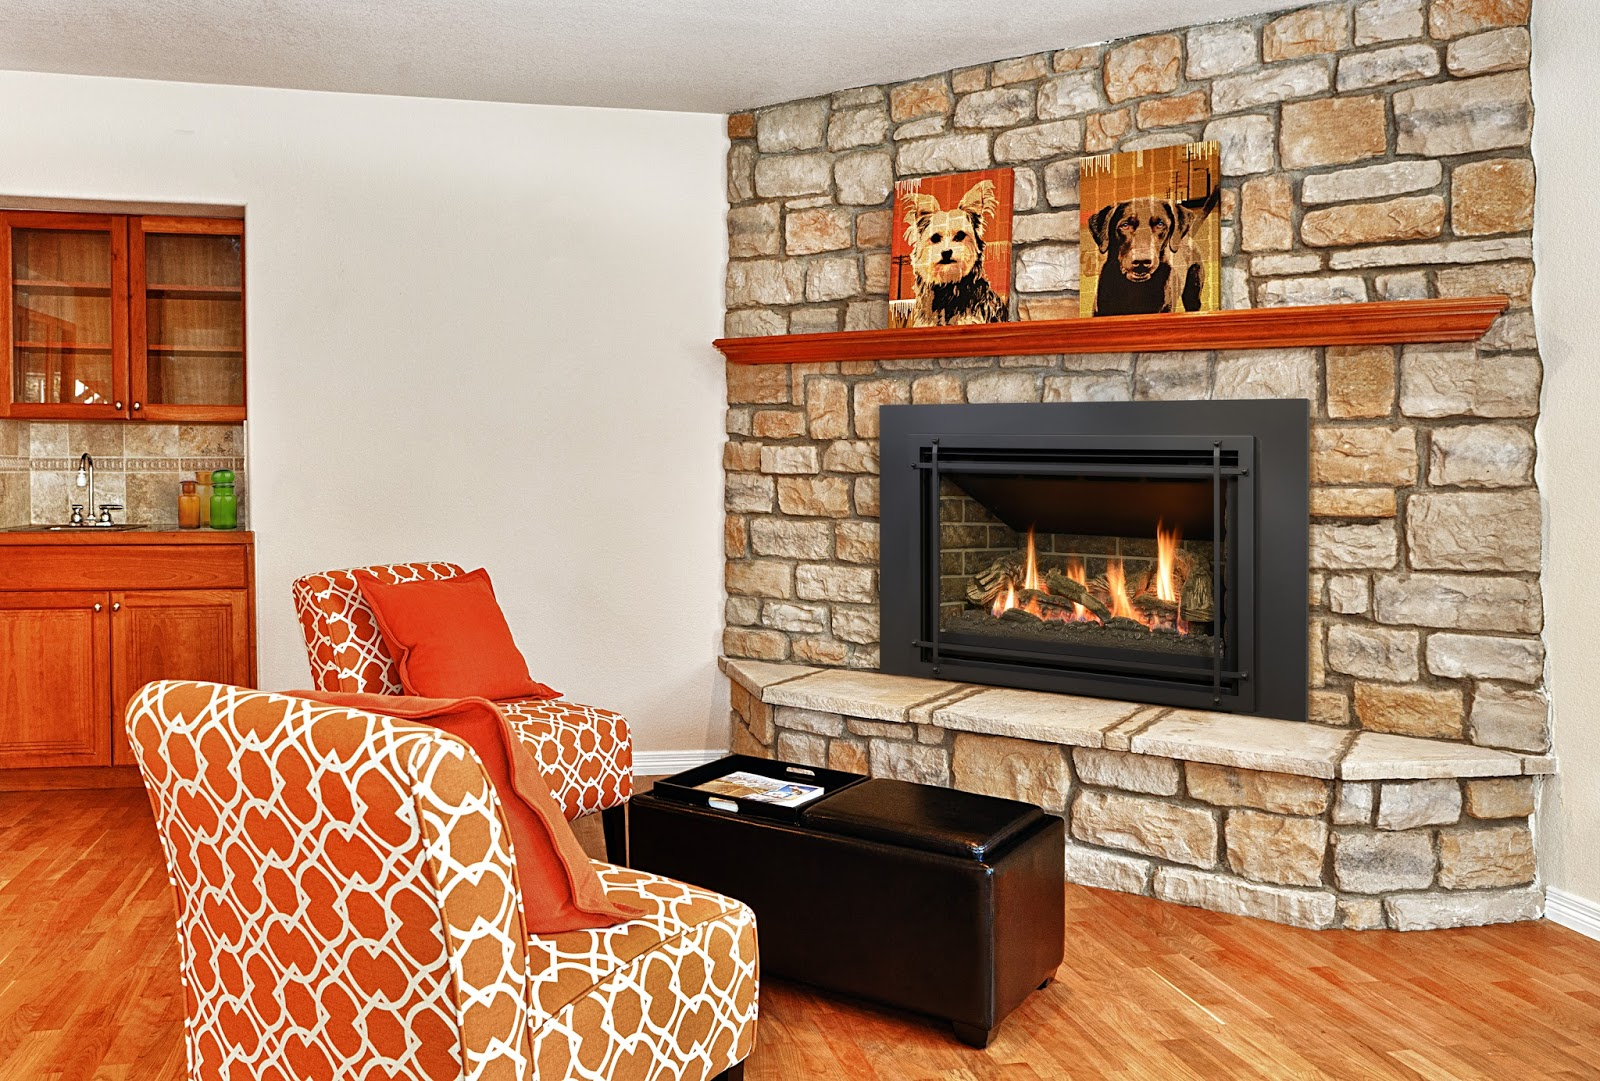 How Gas Fireplaces Work With An Ipi Vs Milivolt Ignition System Kozy Heat Fireplaces